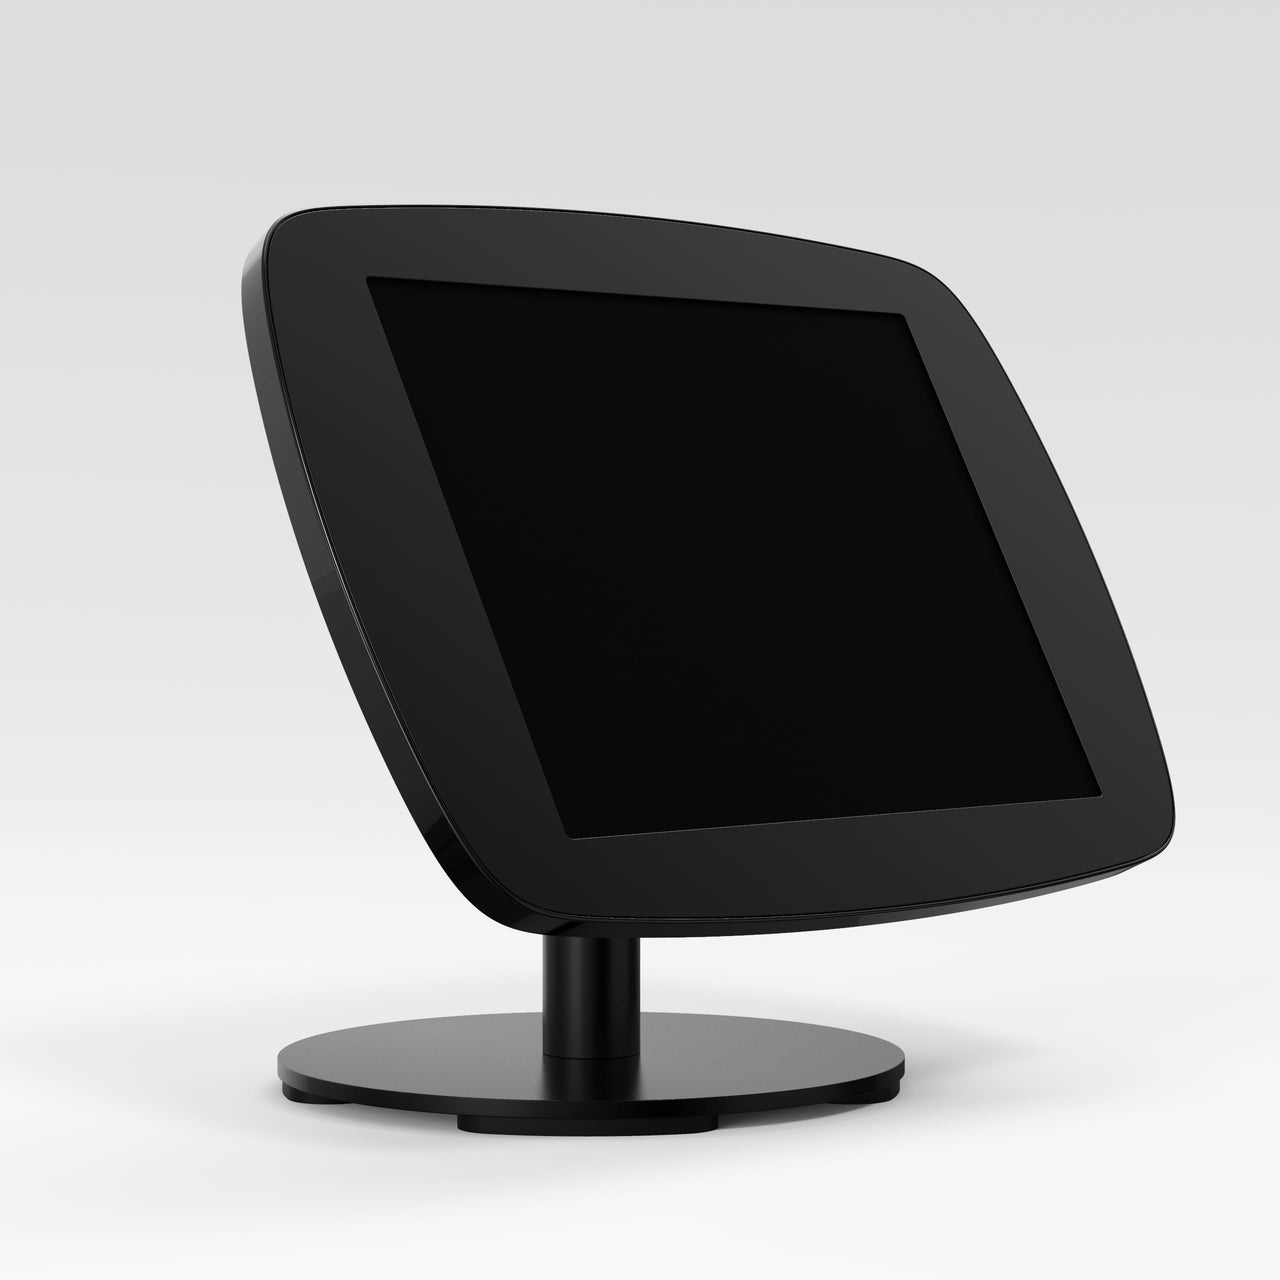 Bouncepad Counter 60 - A secure tablet & iPad tablet stand in black.